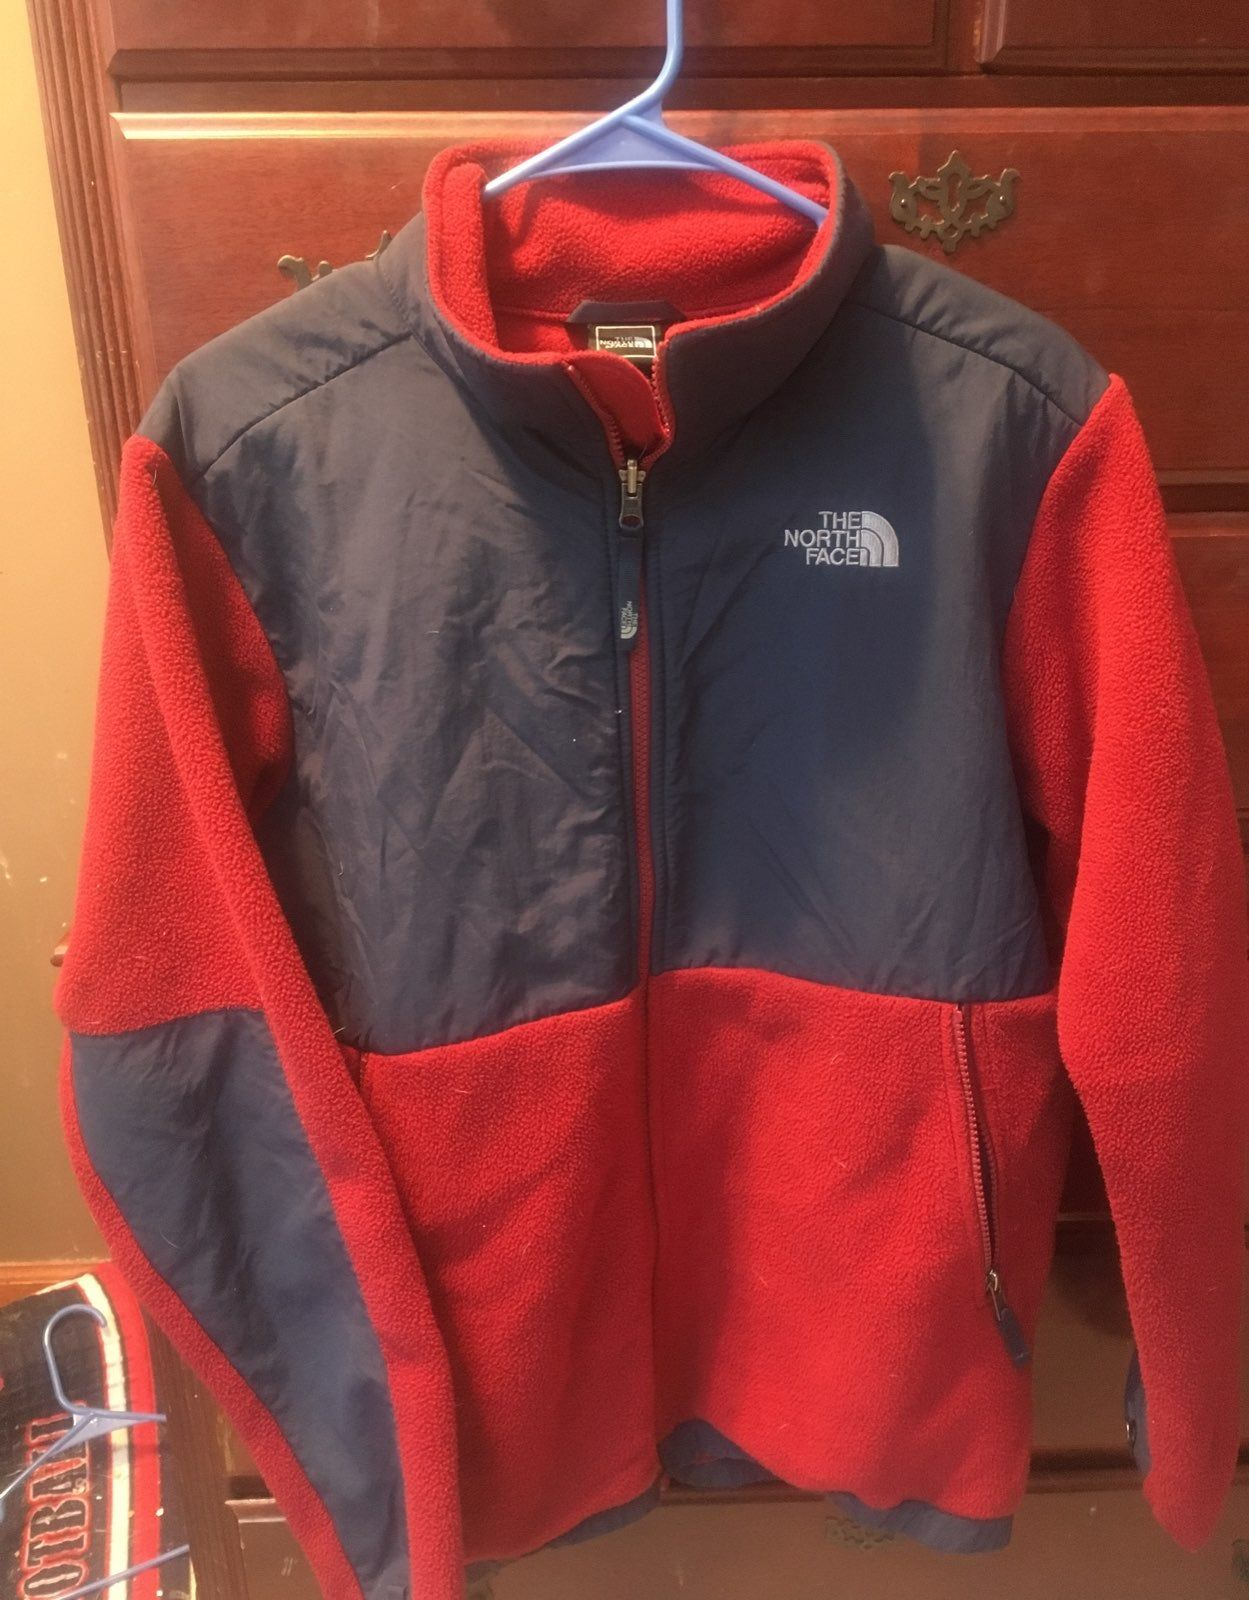 North Face Jacket It S Used But In Great Condition And Is A Size Youth Xl North Face Jacket The North Face Jackets [ 1600 x 1249 Pixel ]